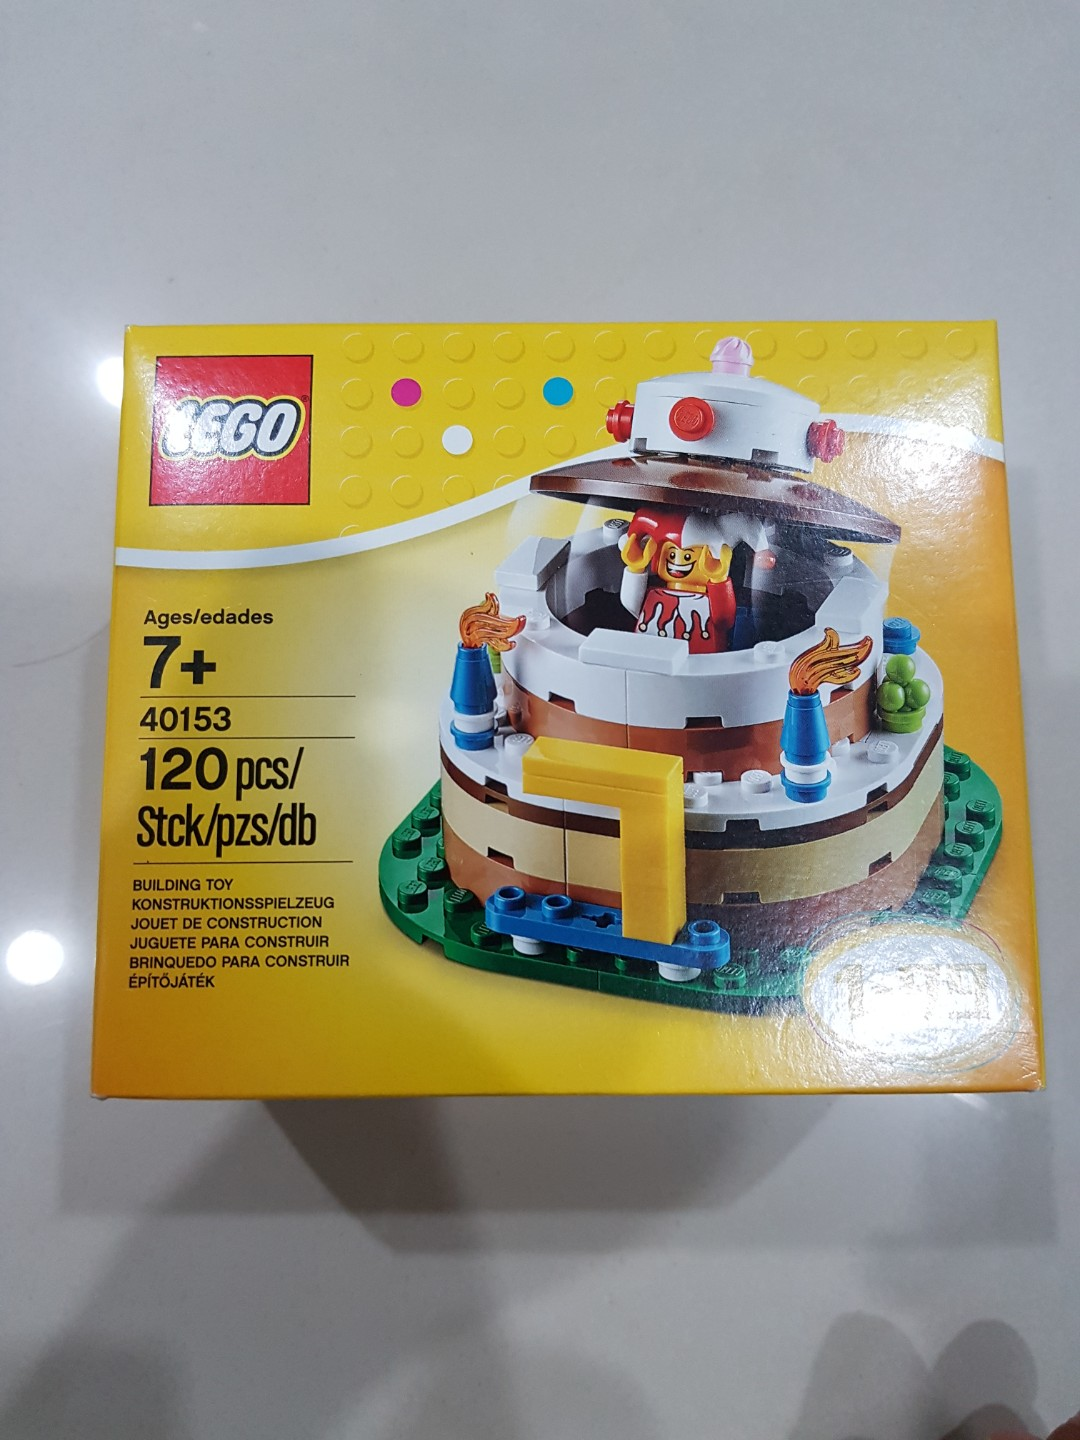 Lego Birthday Cake 40153 Toys Games Other On Carousell